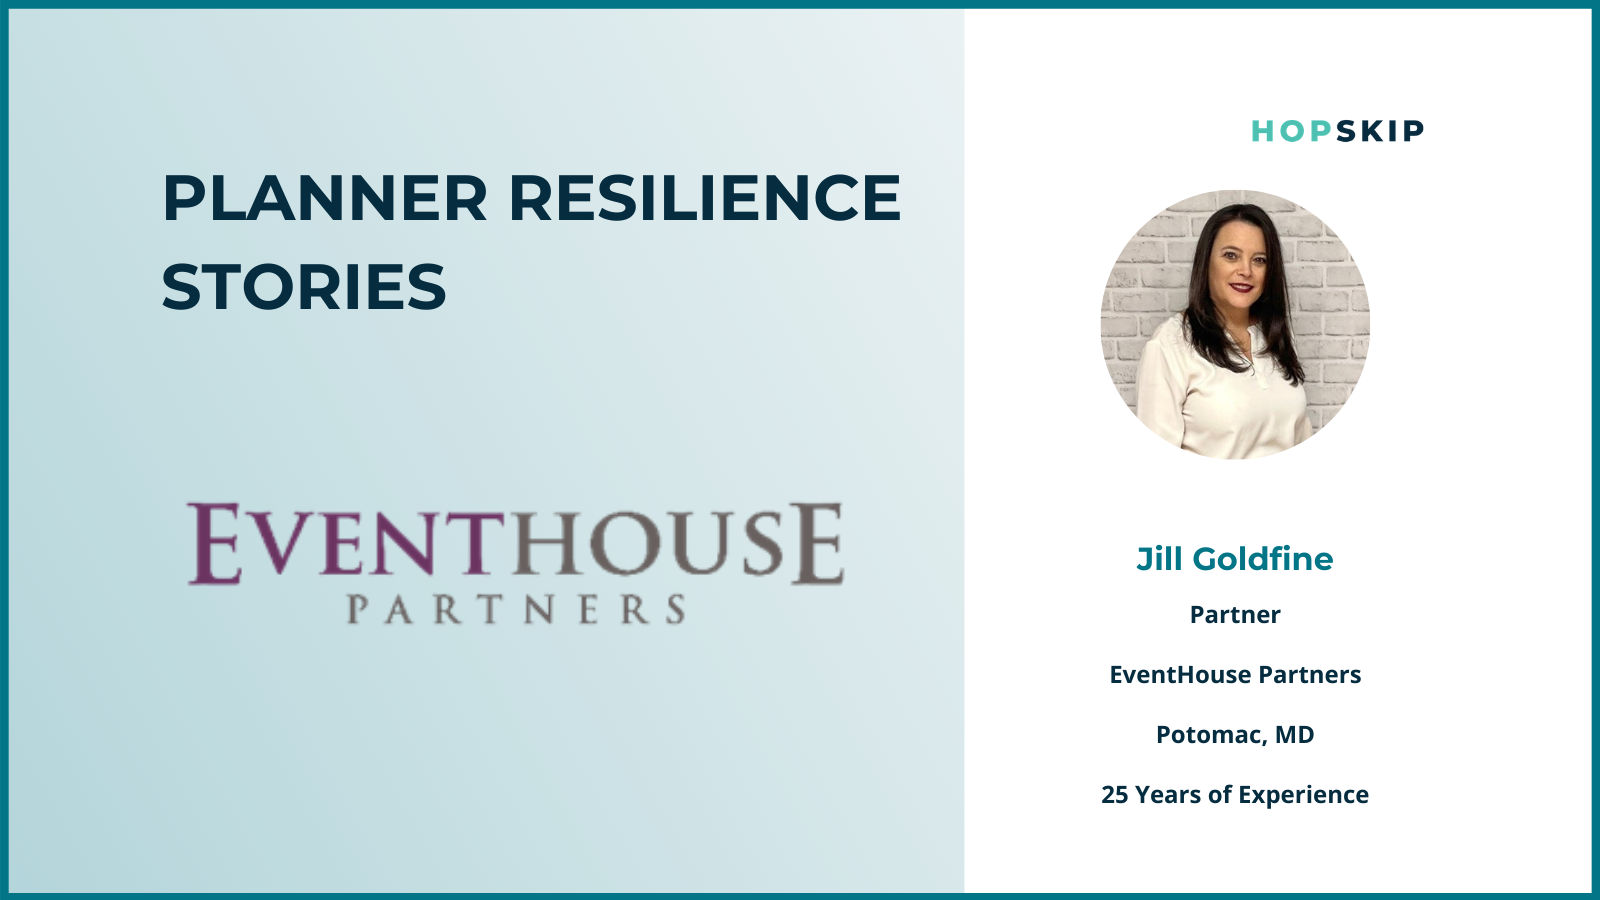 Jill Goldfine, of EventHouse Partners, a third party meeting and planning company